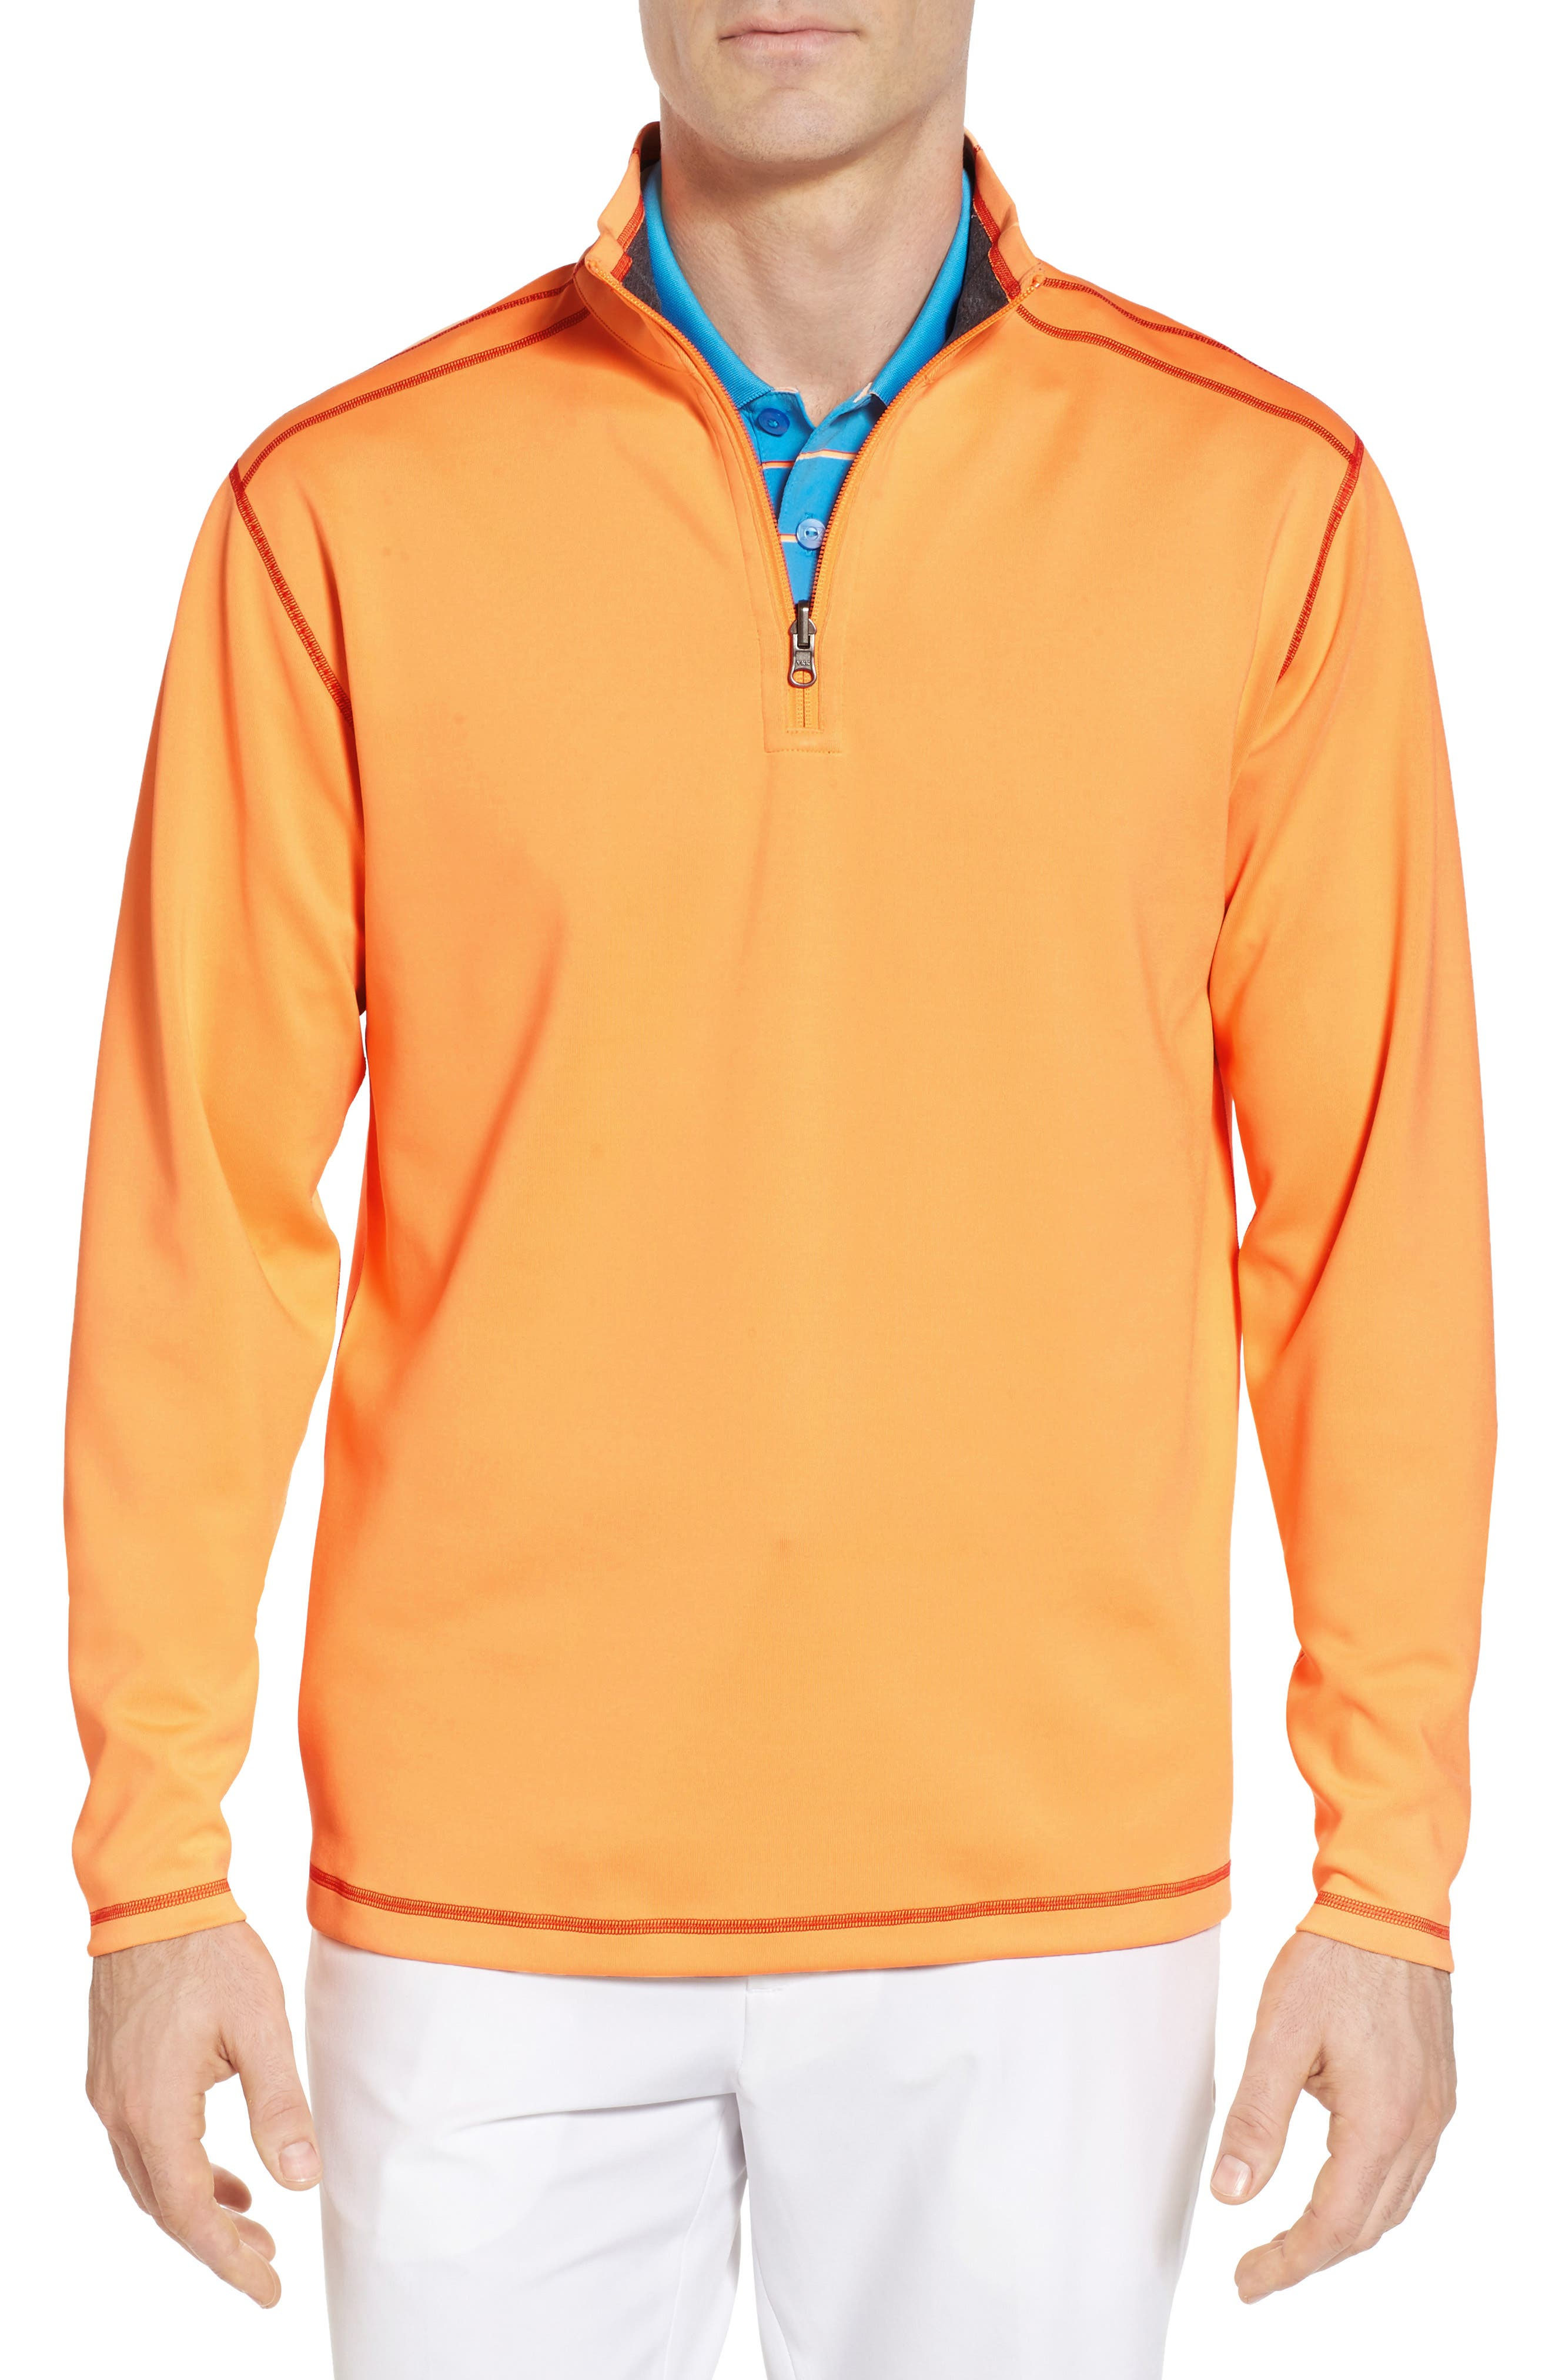 Evergreen Classic Fit DryTec Reversible Half Zip Pullover,                         Main,                         color, Clarity